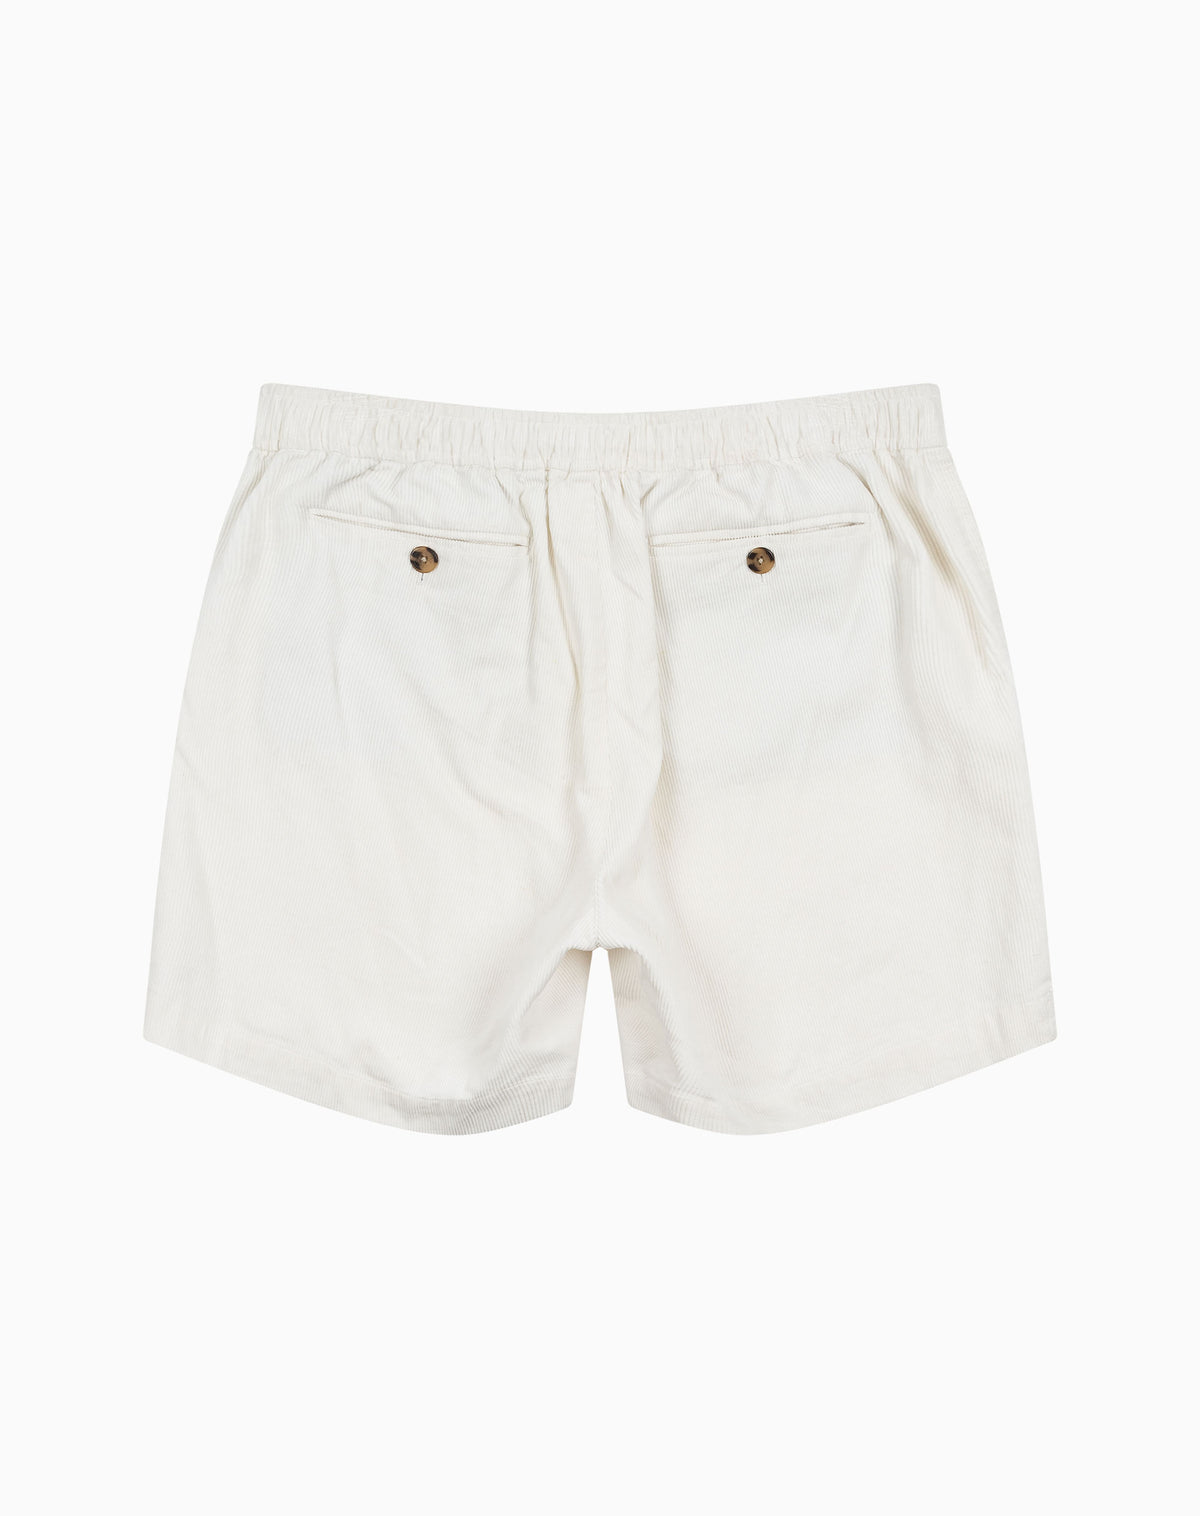 Utility Short in White Corduroy